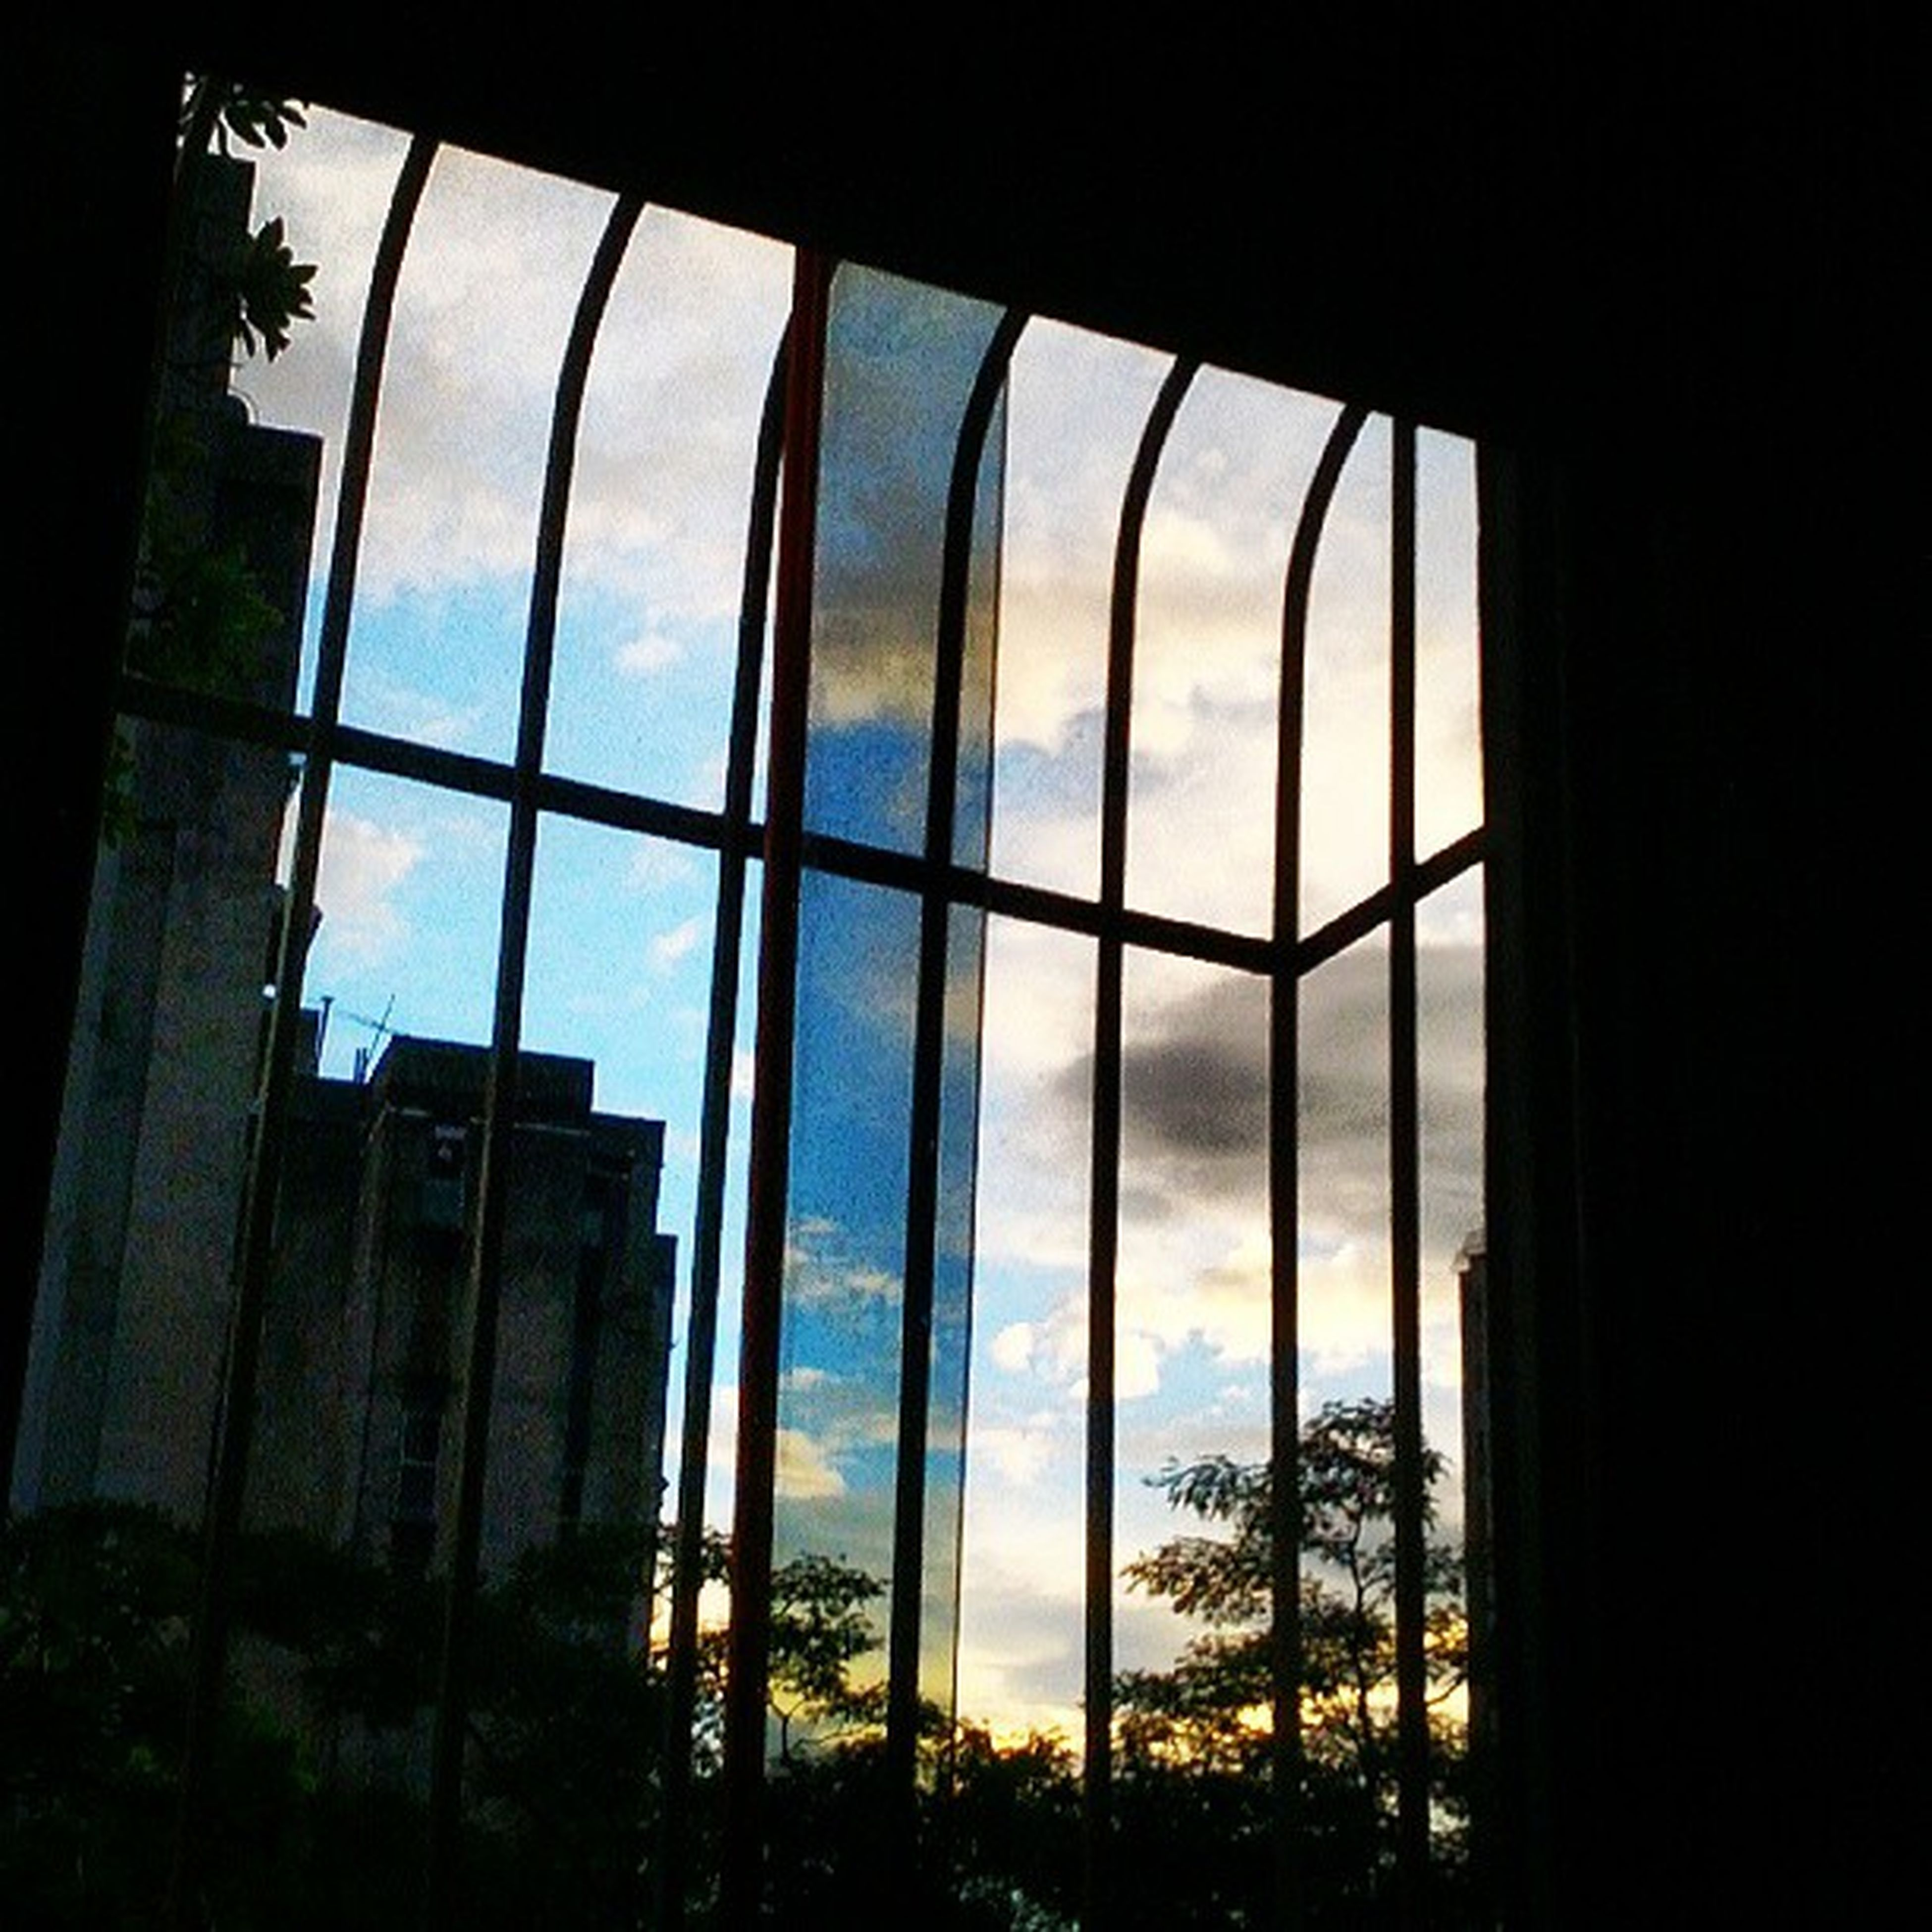 window, indoors, architecture, built structure, glass - material, sky, transparent, tree, day, looking through window, sunlight, silhouette, low angle view, no people, arch, cloud - sky, building exterior, reflection, nature, cloud